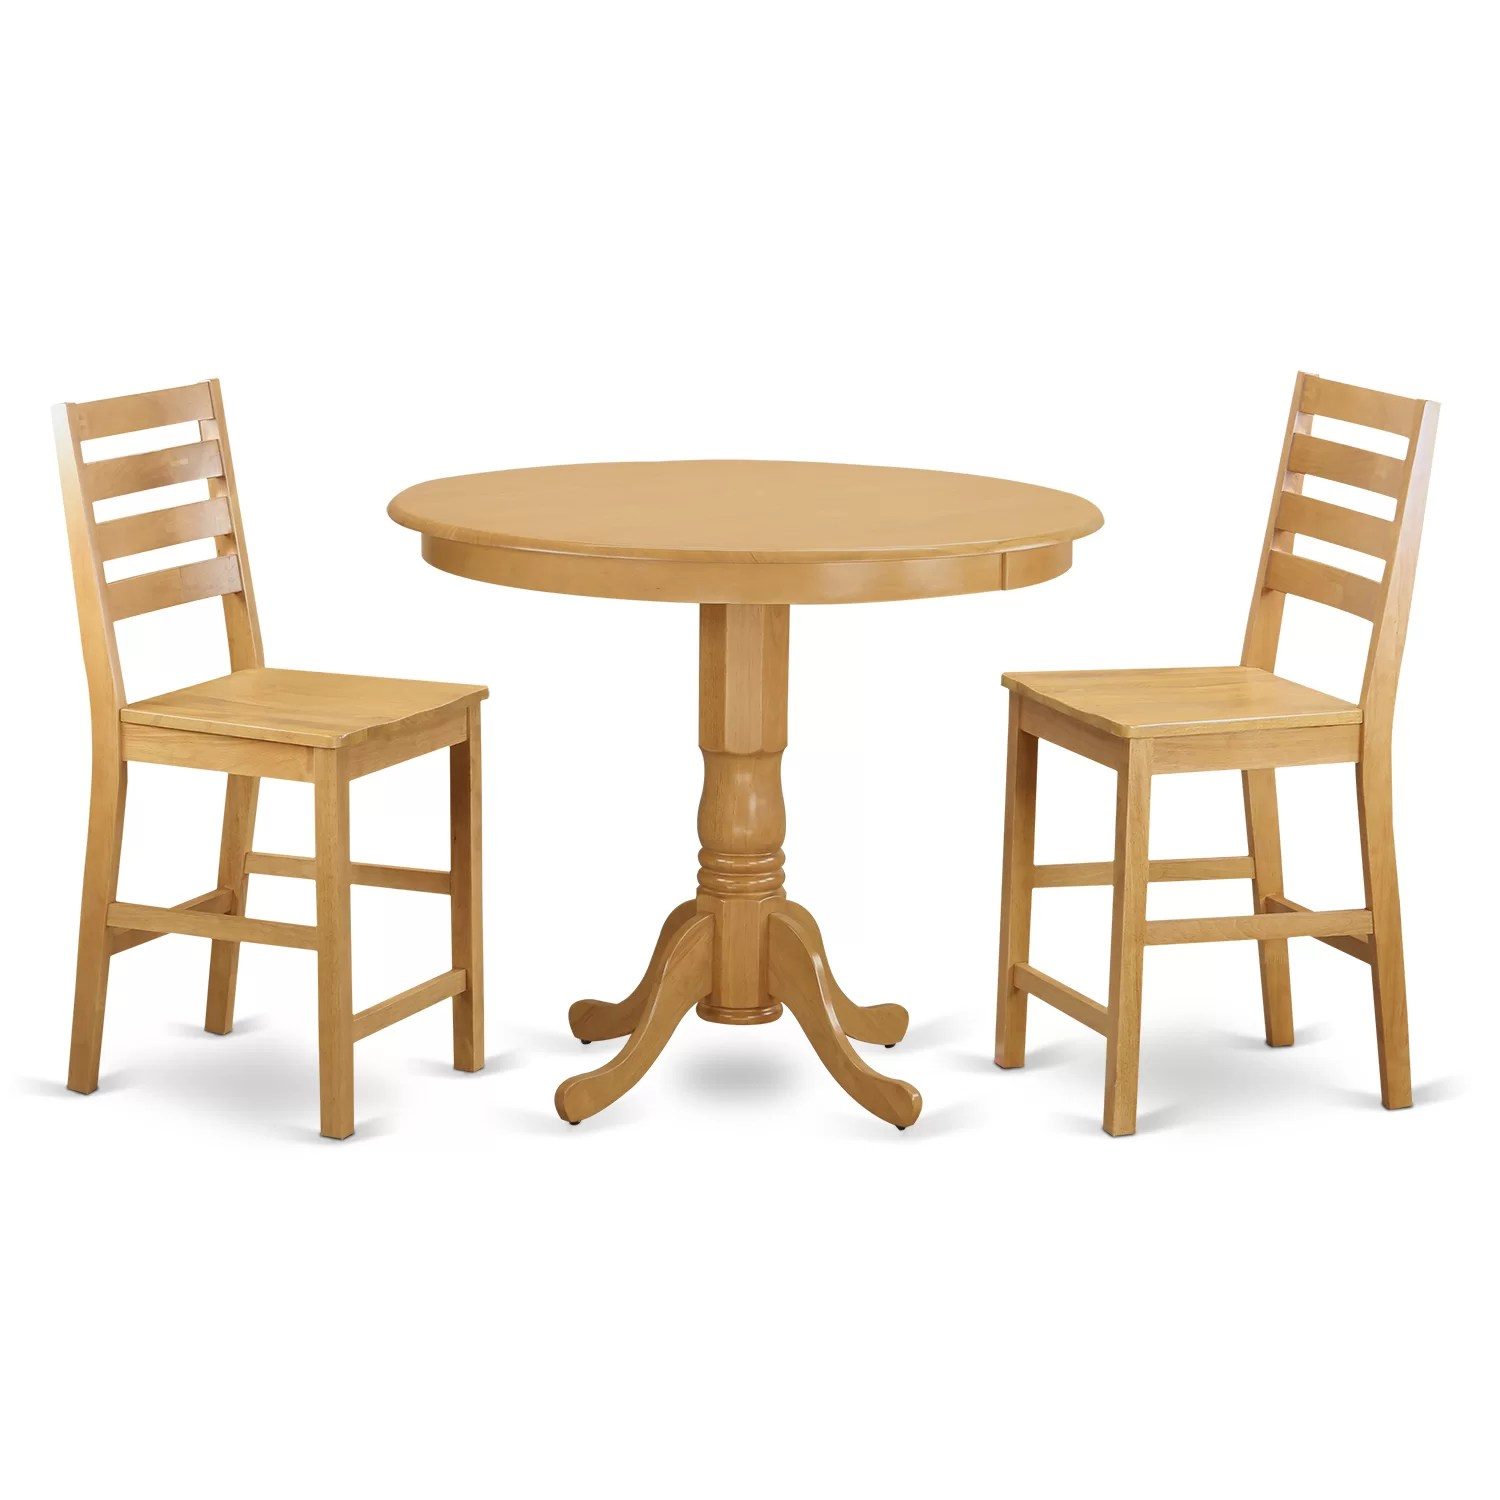 pub table and chairs 3 piece set 2 gaming chair review wooden importers trenton counter height wayfair